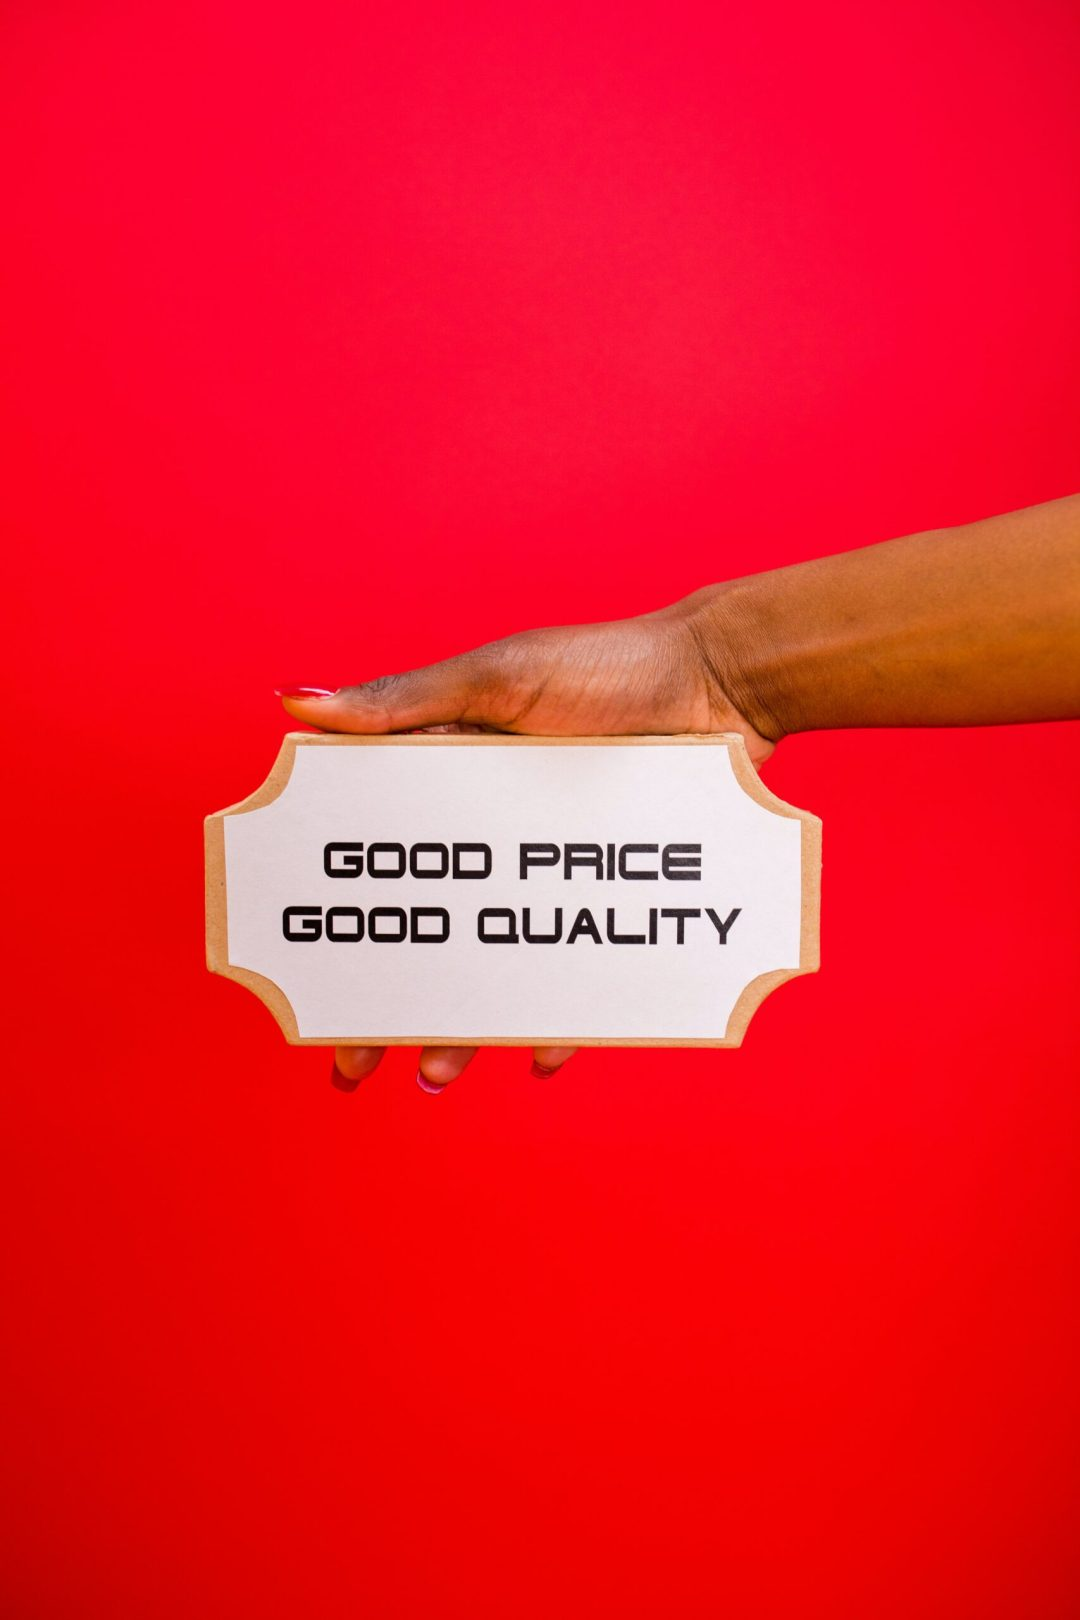 Tiered pricing using the decoy effect in marketing